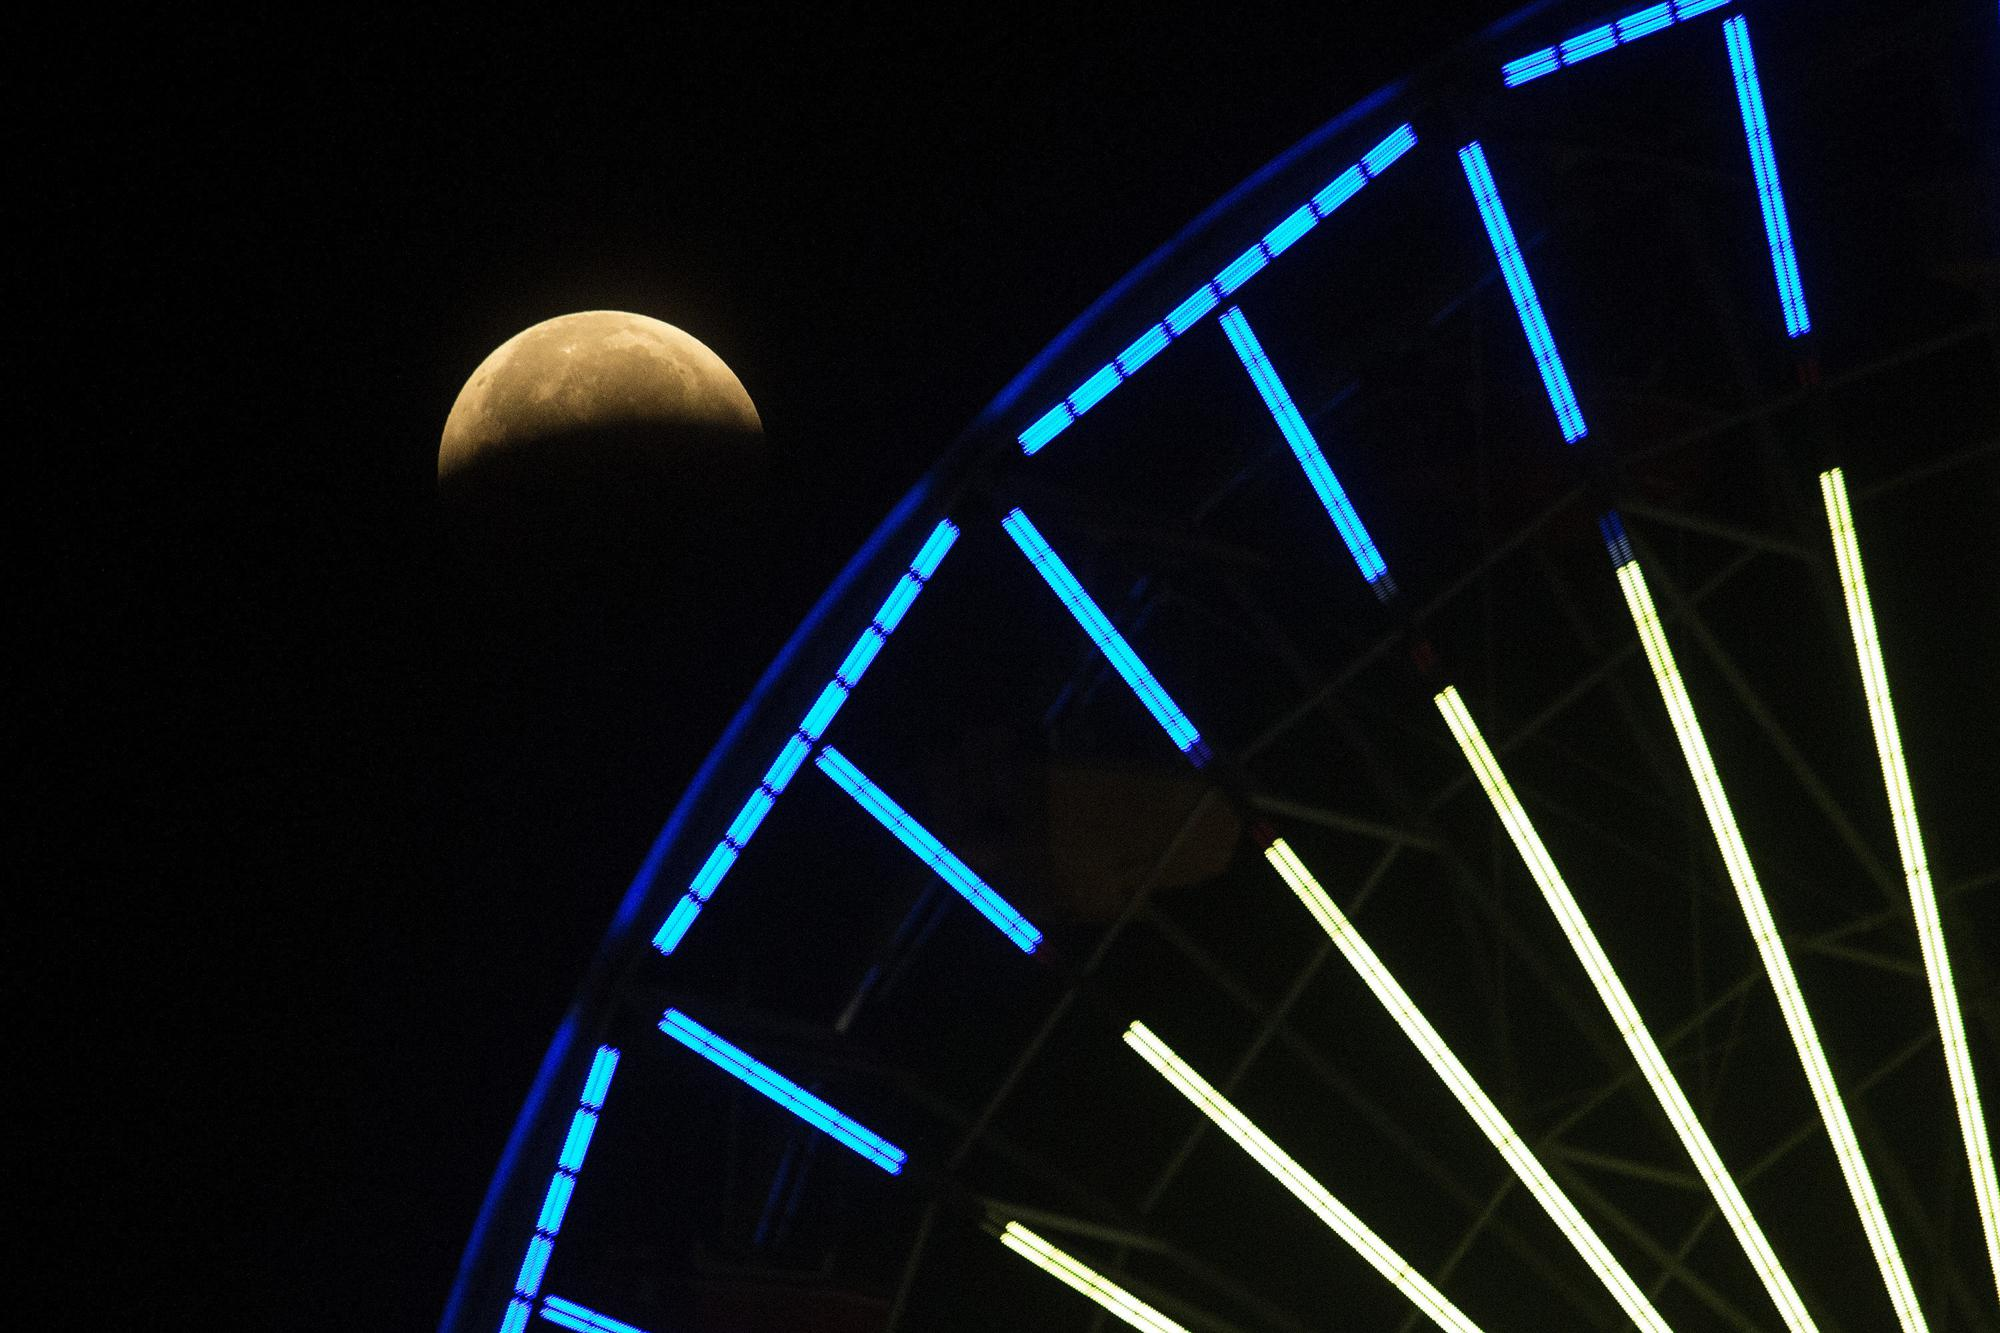 The lunar eclipse shines behind a Ferris wheel in Santa Monica, Calif., Wednesday, May 26, 2021. The first total lunar eclipse in more than two years is coinciding with a supermoon for quite a cosmic show. (AP Photo/Ringo H.W. Chiu)